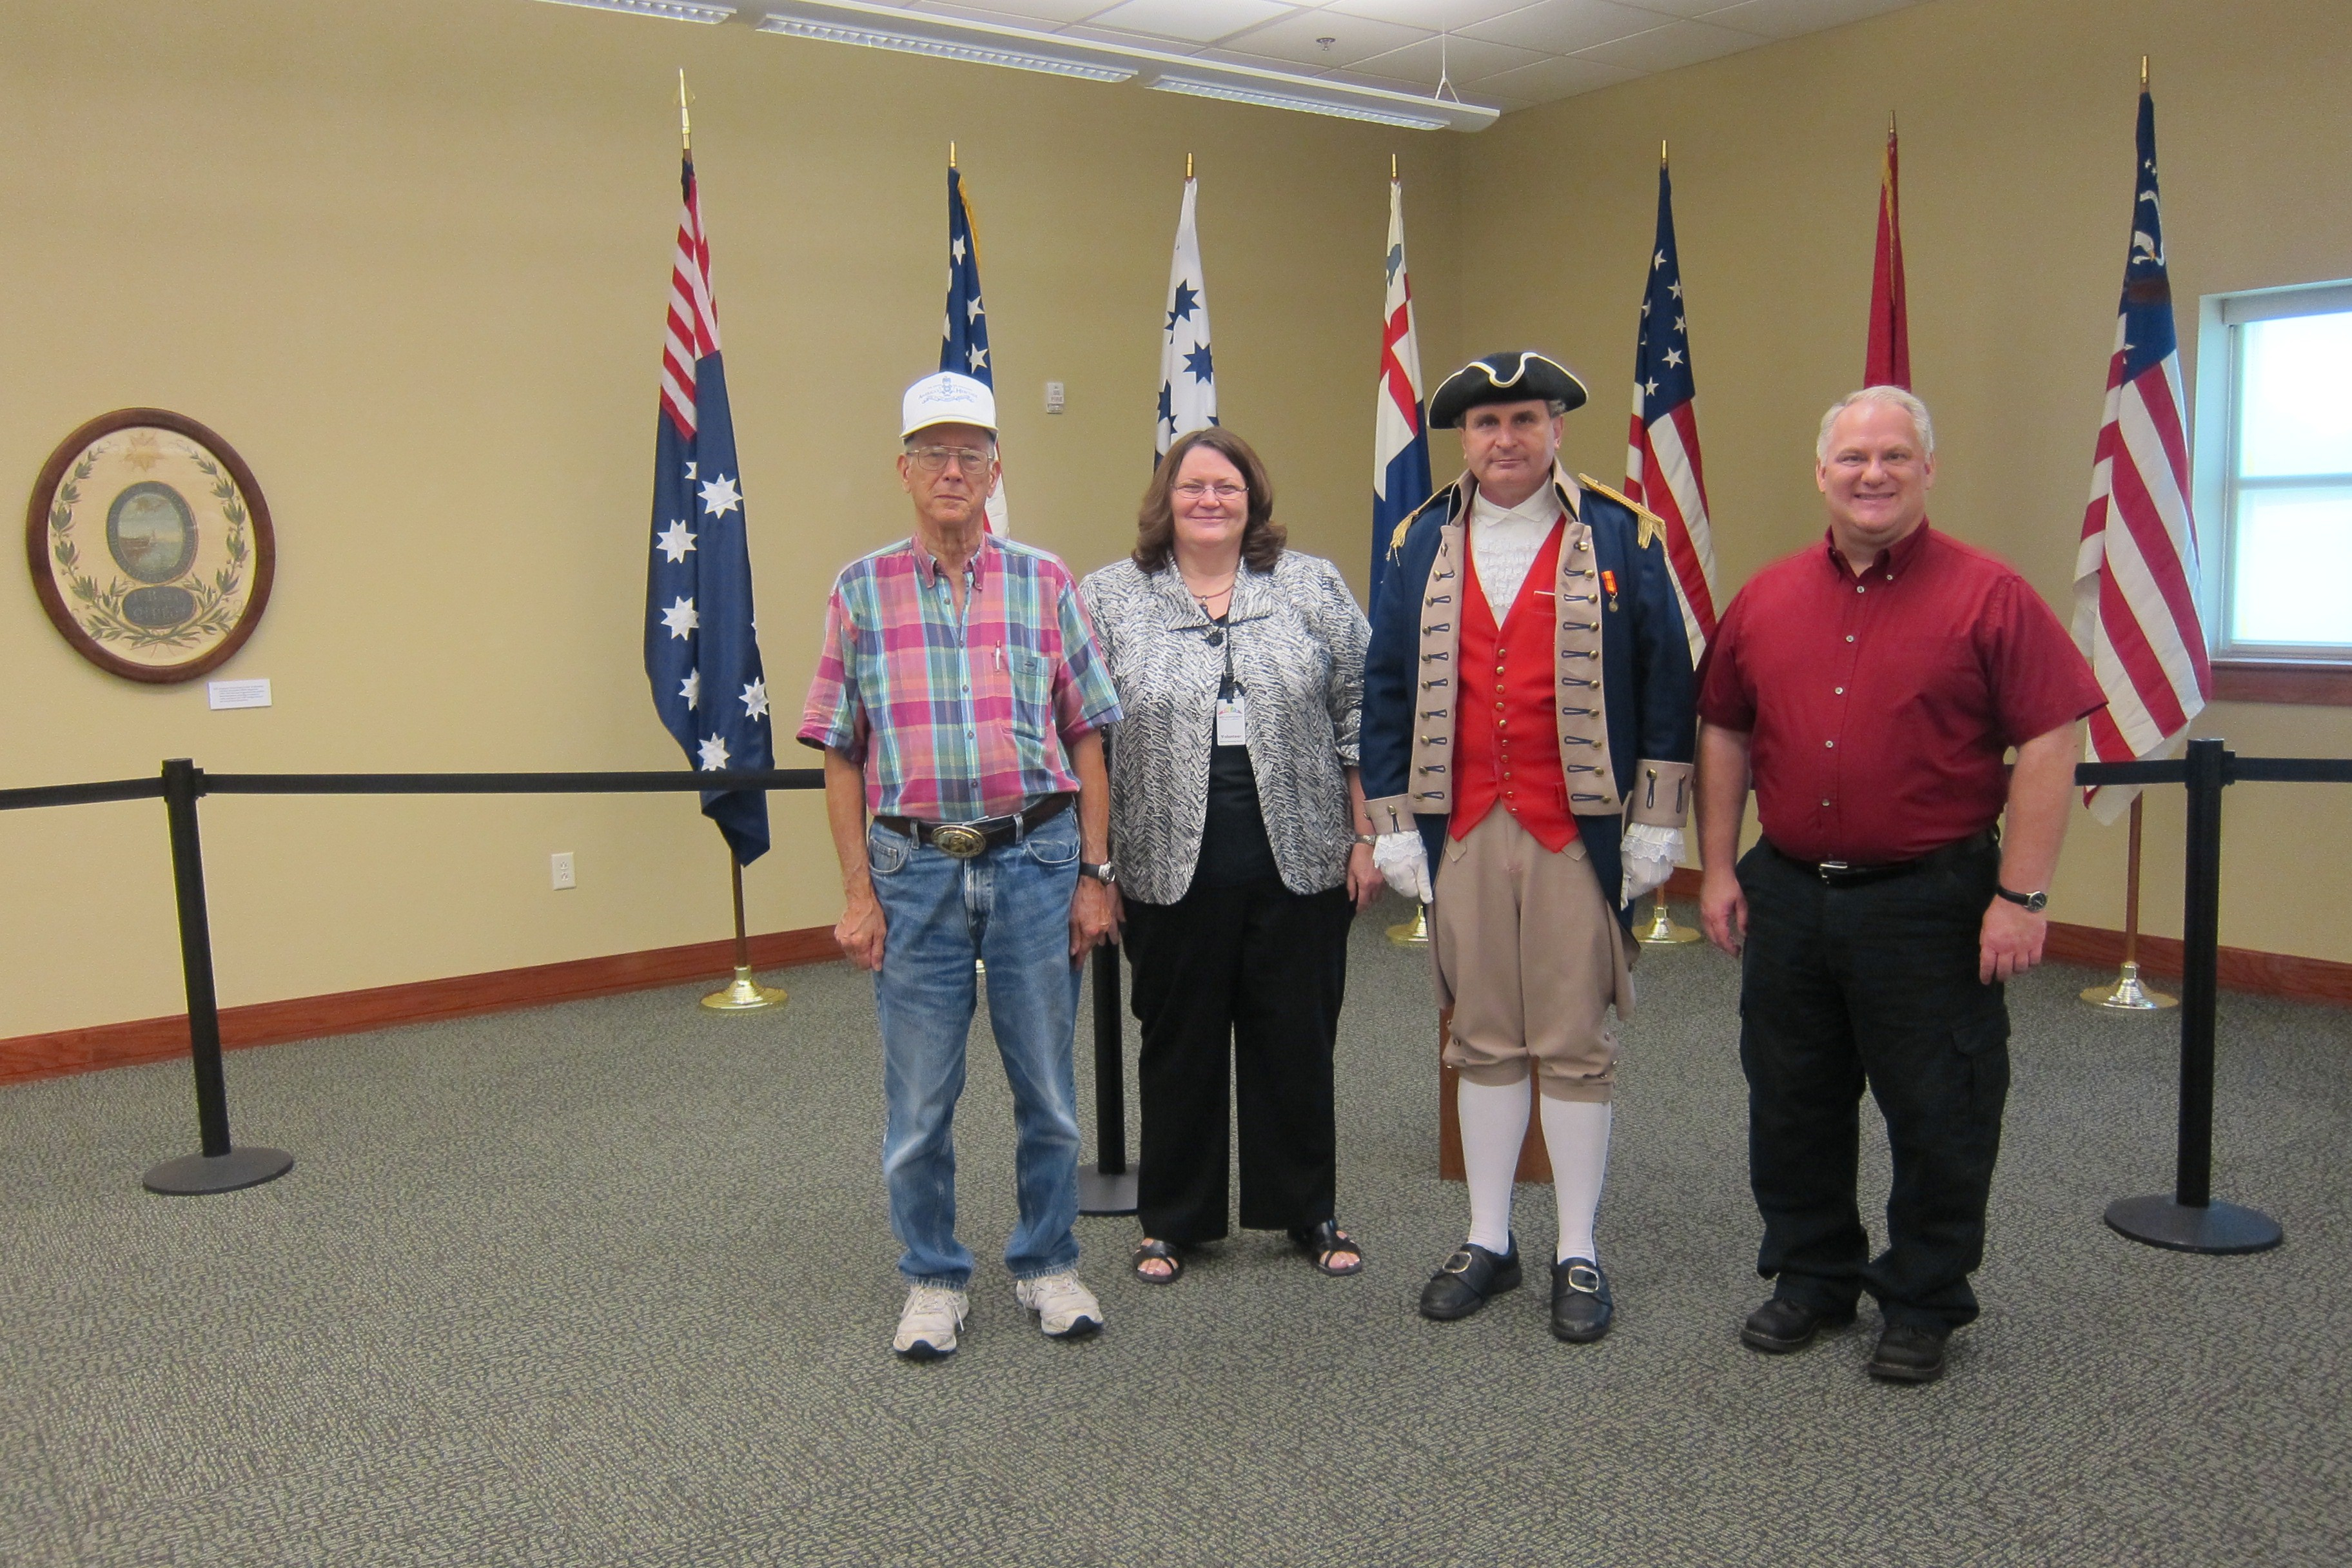 Shown here is the Harry S. Truman Color Guard Team, and other members who volunteered as docents on Saturday, July 23, 2011. Several members of the Harry S. Truman Chapters have been appointed by the Midwest Genealogy Center, to assit with the Roots of a Nation Exhibit at the Midwest Genealogy Center in Independence, MO.